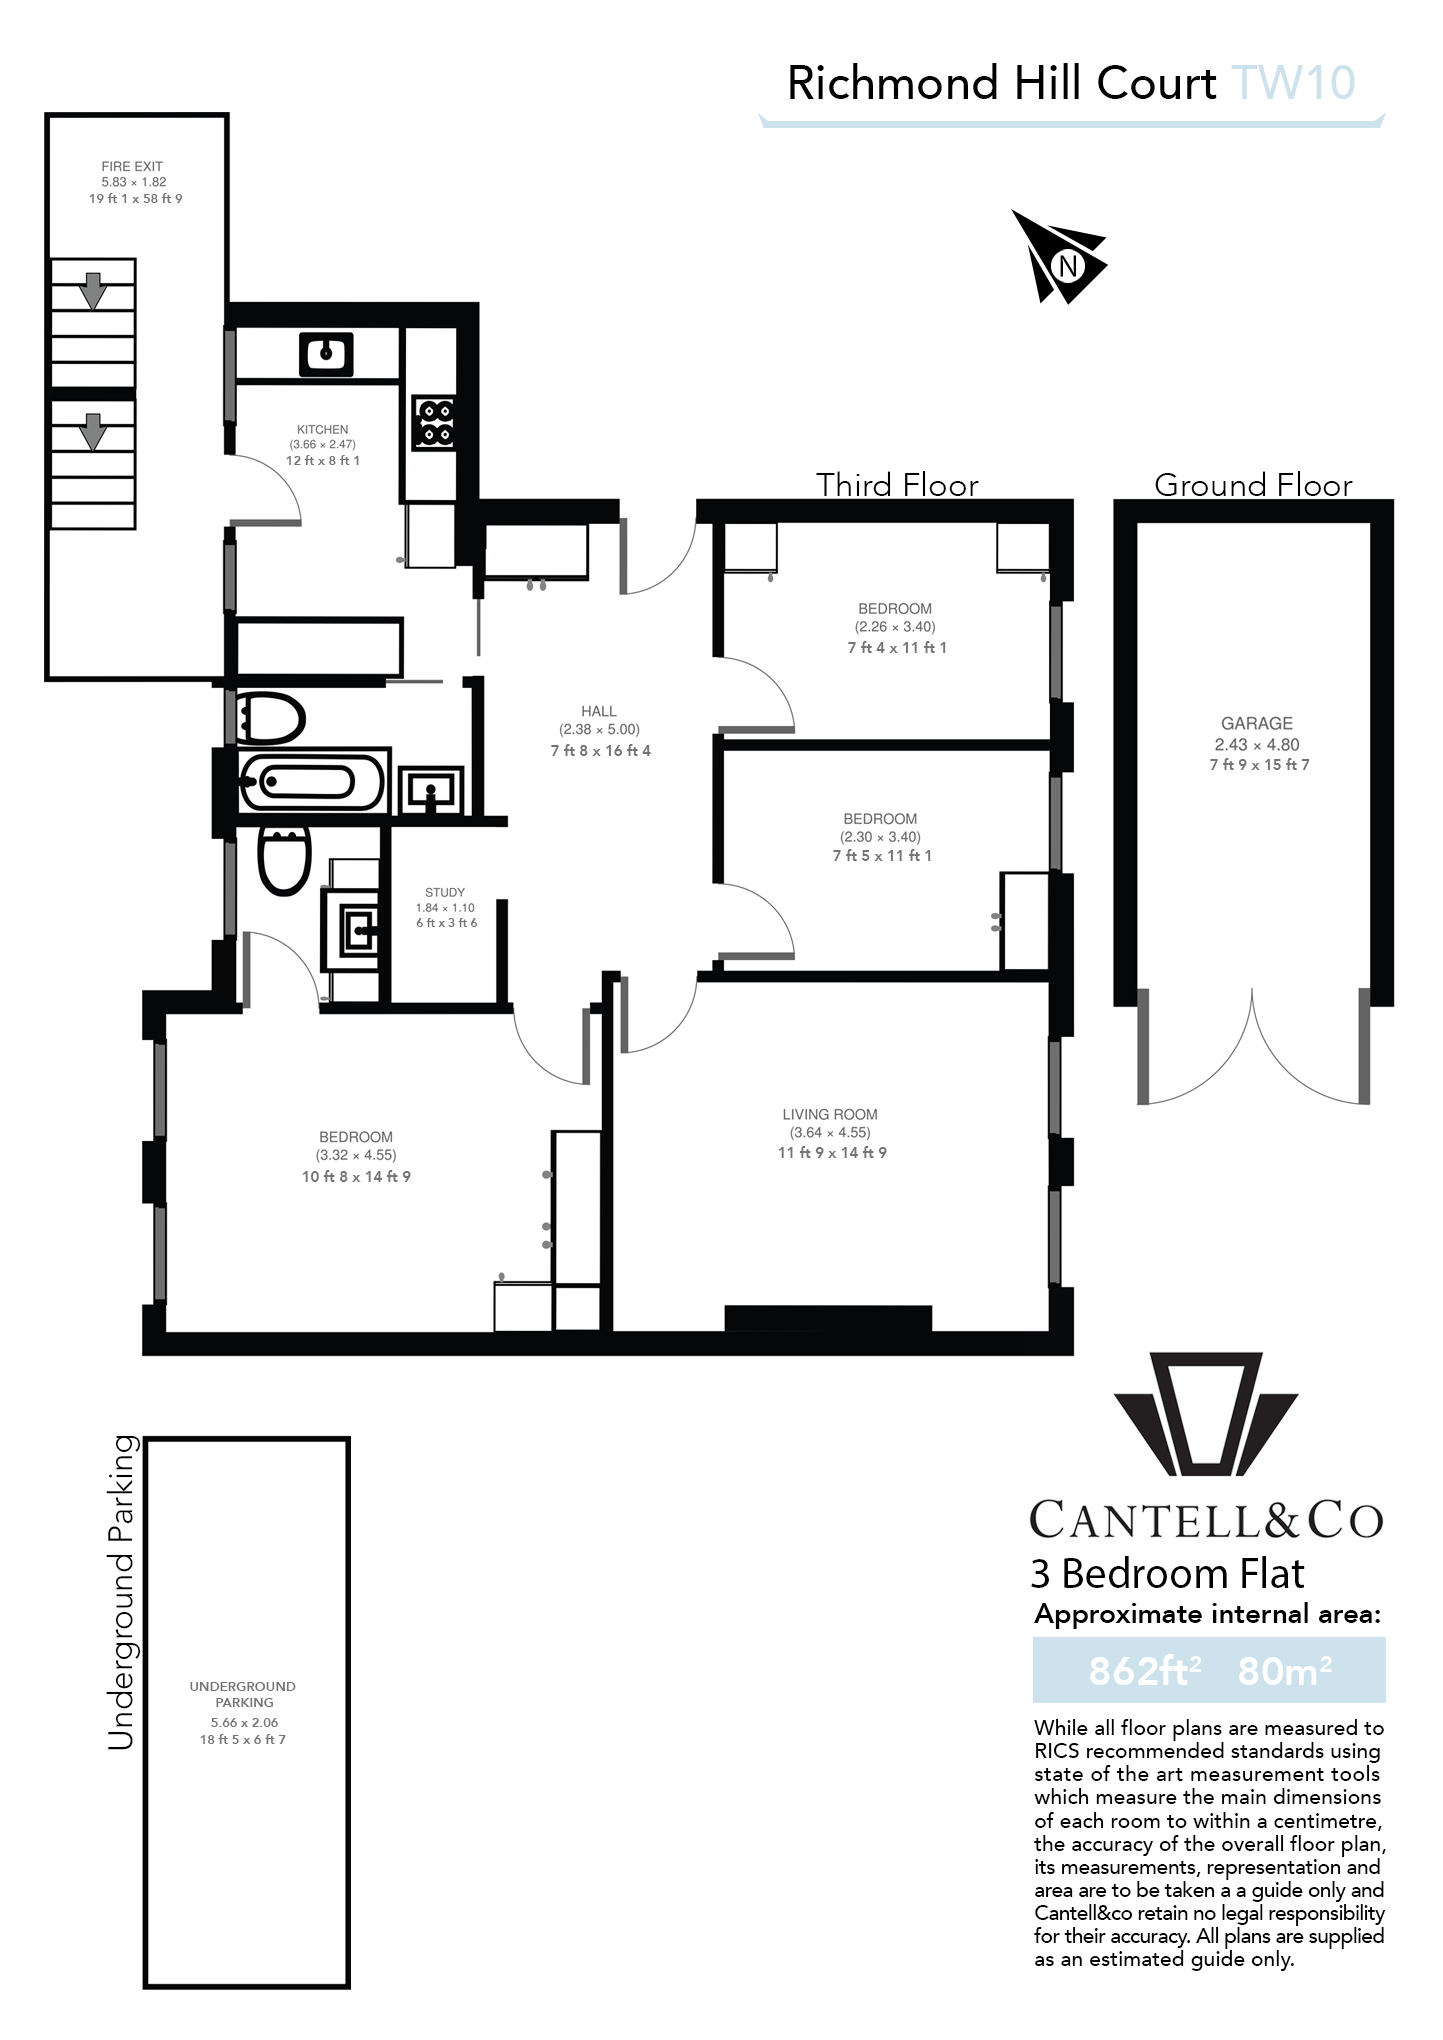 19-richmond-hill-court-jpg-floor-plan-new